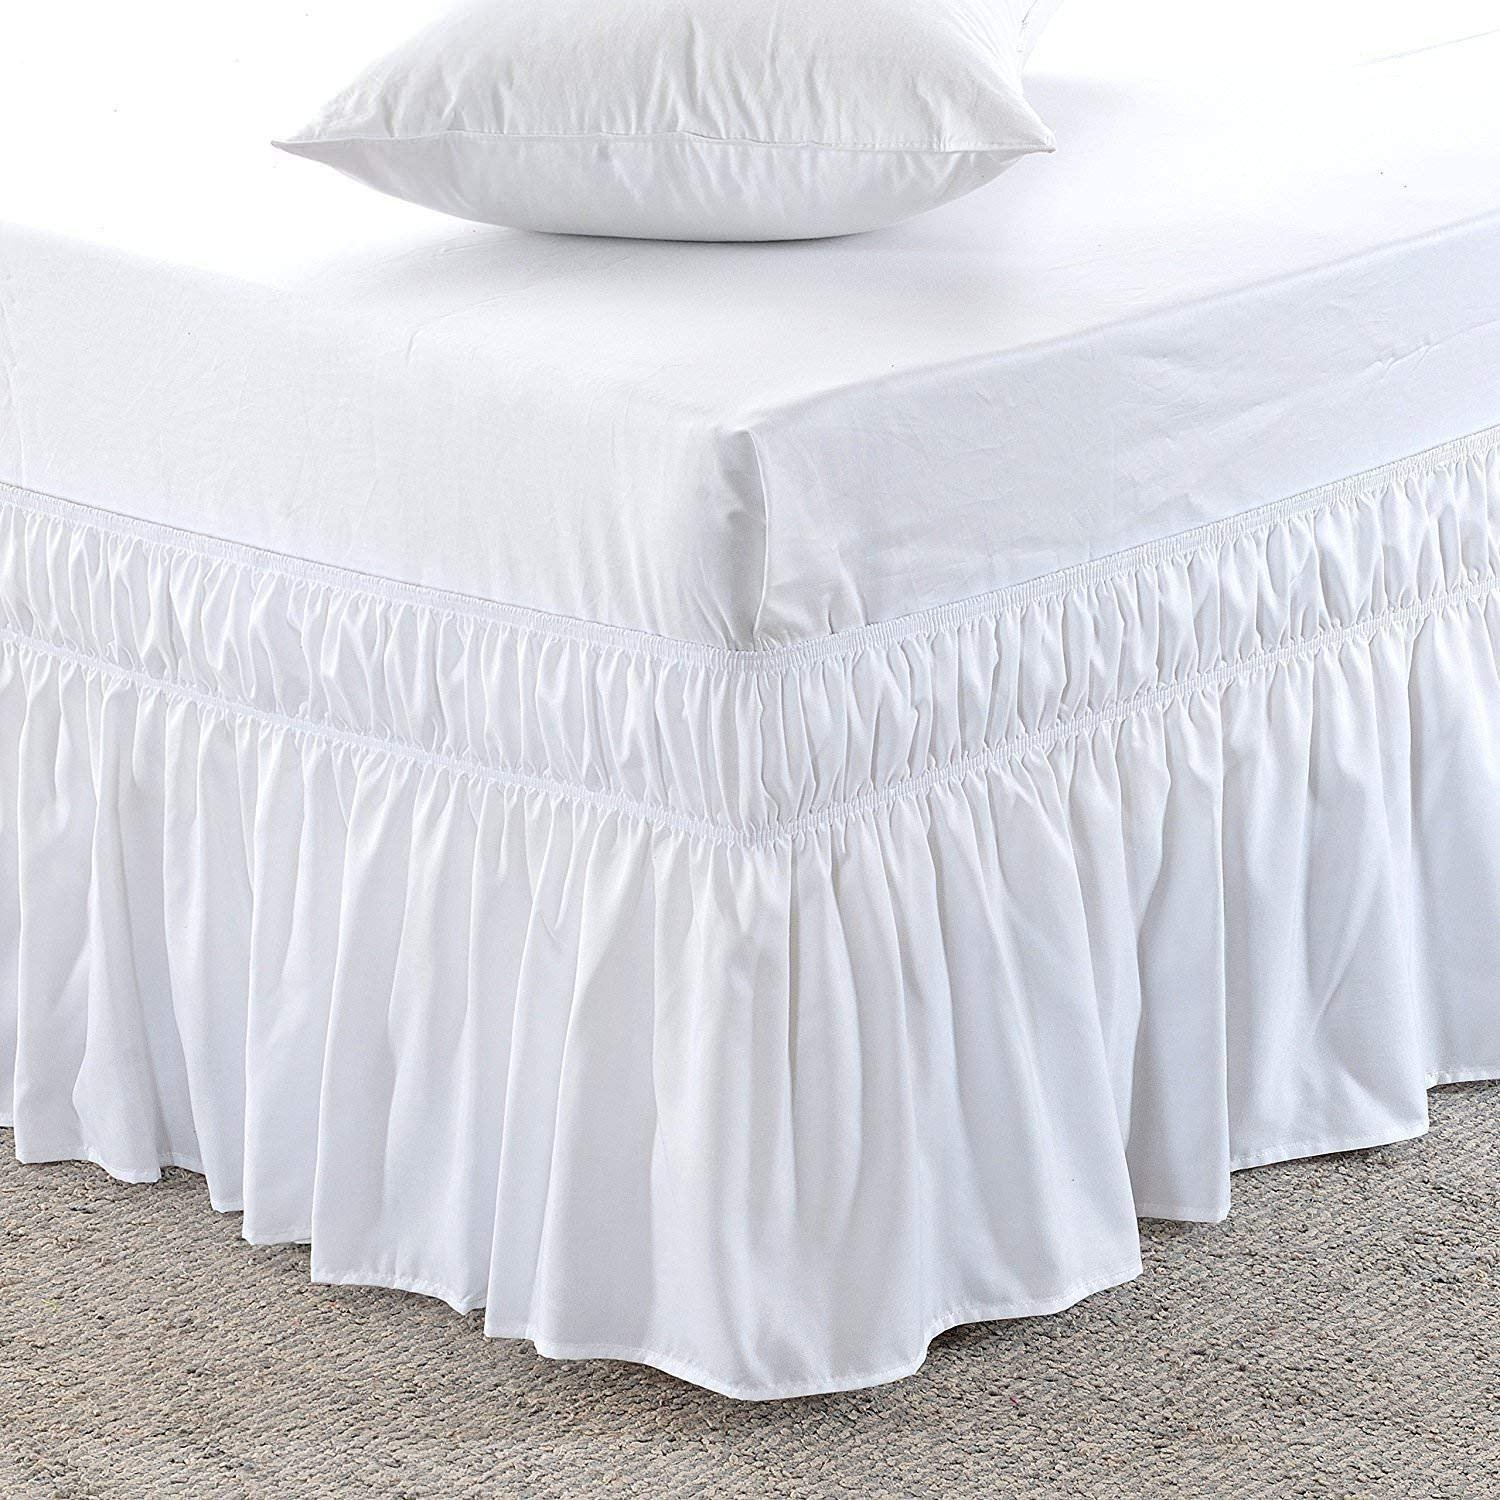 47x87x18inch Polyester Elasticated Valance Sheet,pleated Three Fabric Sides Wrap Around Deep Frilled Base Divan Base Cover-a 120x220x45cm